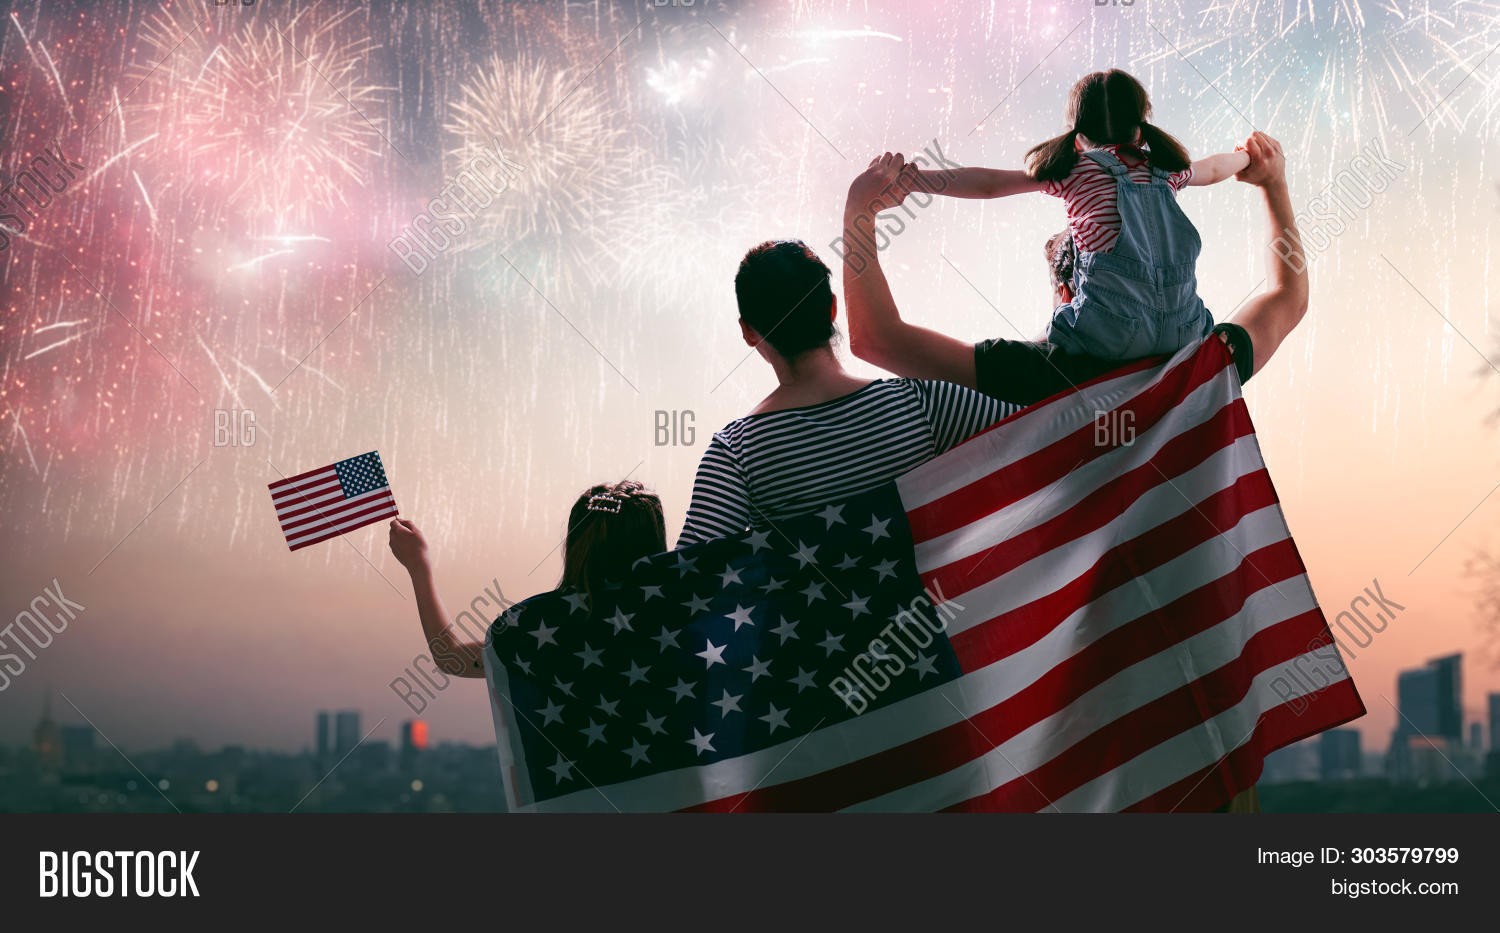 4th,adult,america,american,baby,beautiful,casual,caucasian,celebration,child,childhood,daughter,day,event,family,father,female,festive,fireworks,flag,fourth,freedom,fun,girl,happy,holiday,independence,indulgence,joy,july,kid,man,memorial,mother,of,outdoors,parent,parenthood,patriotic,patriotism,people,portrait,positive,relationship,sunset,symbol,together,us,usa,woman